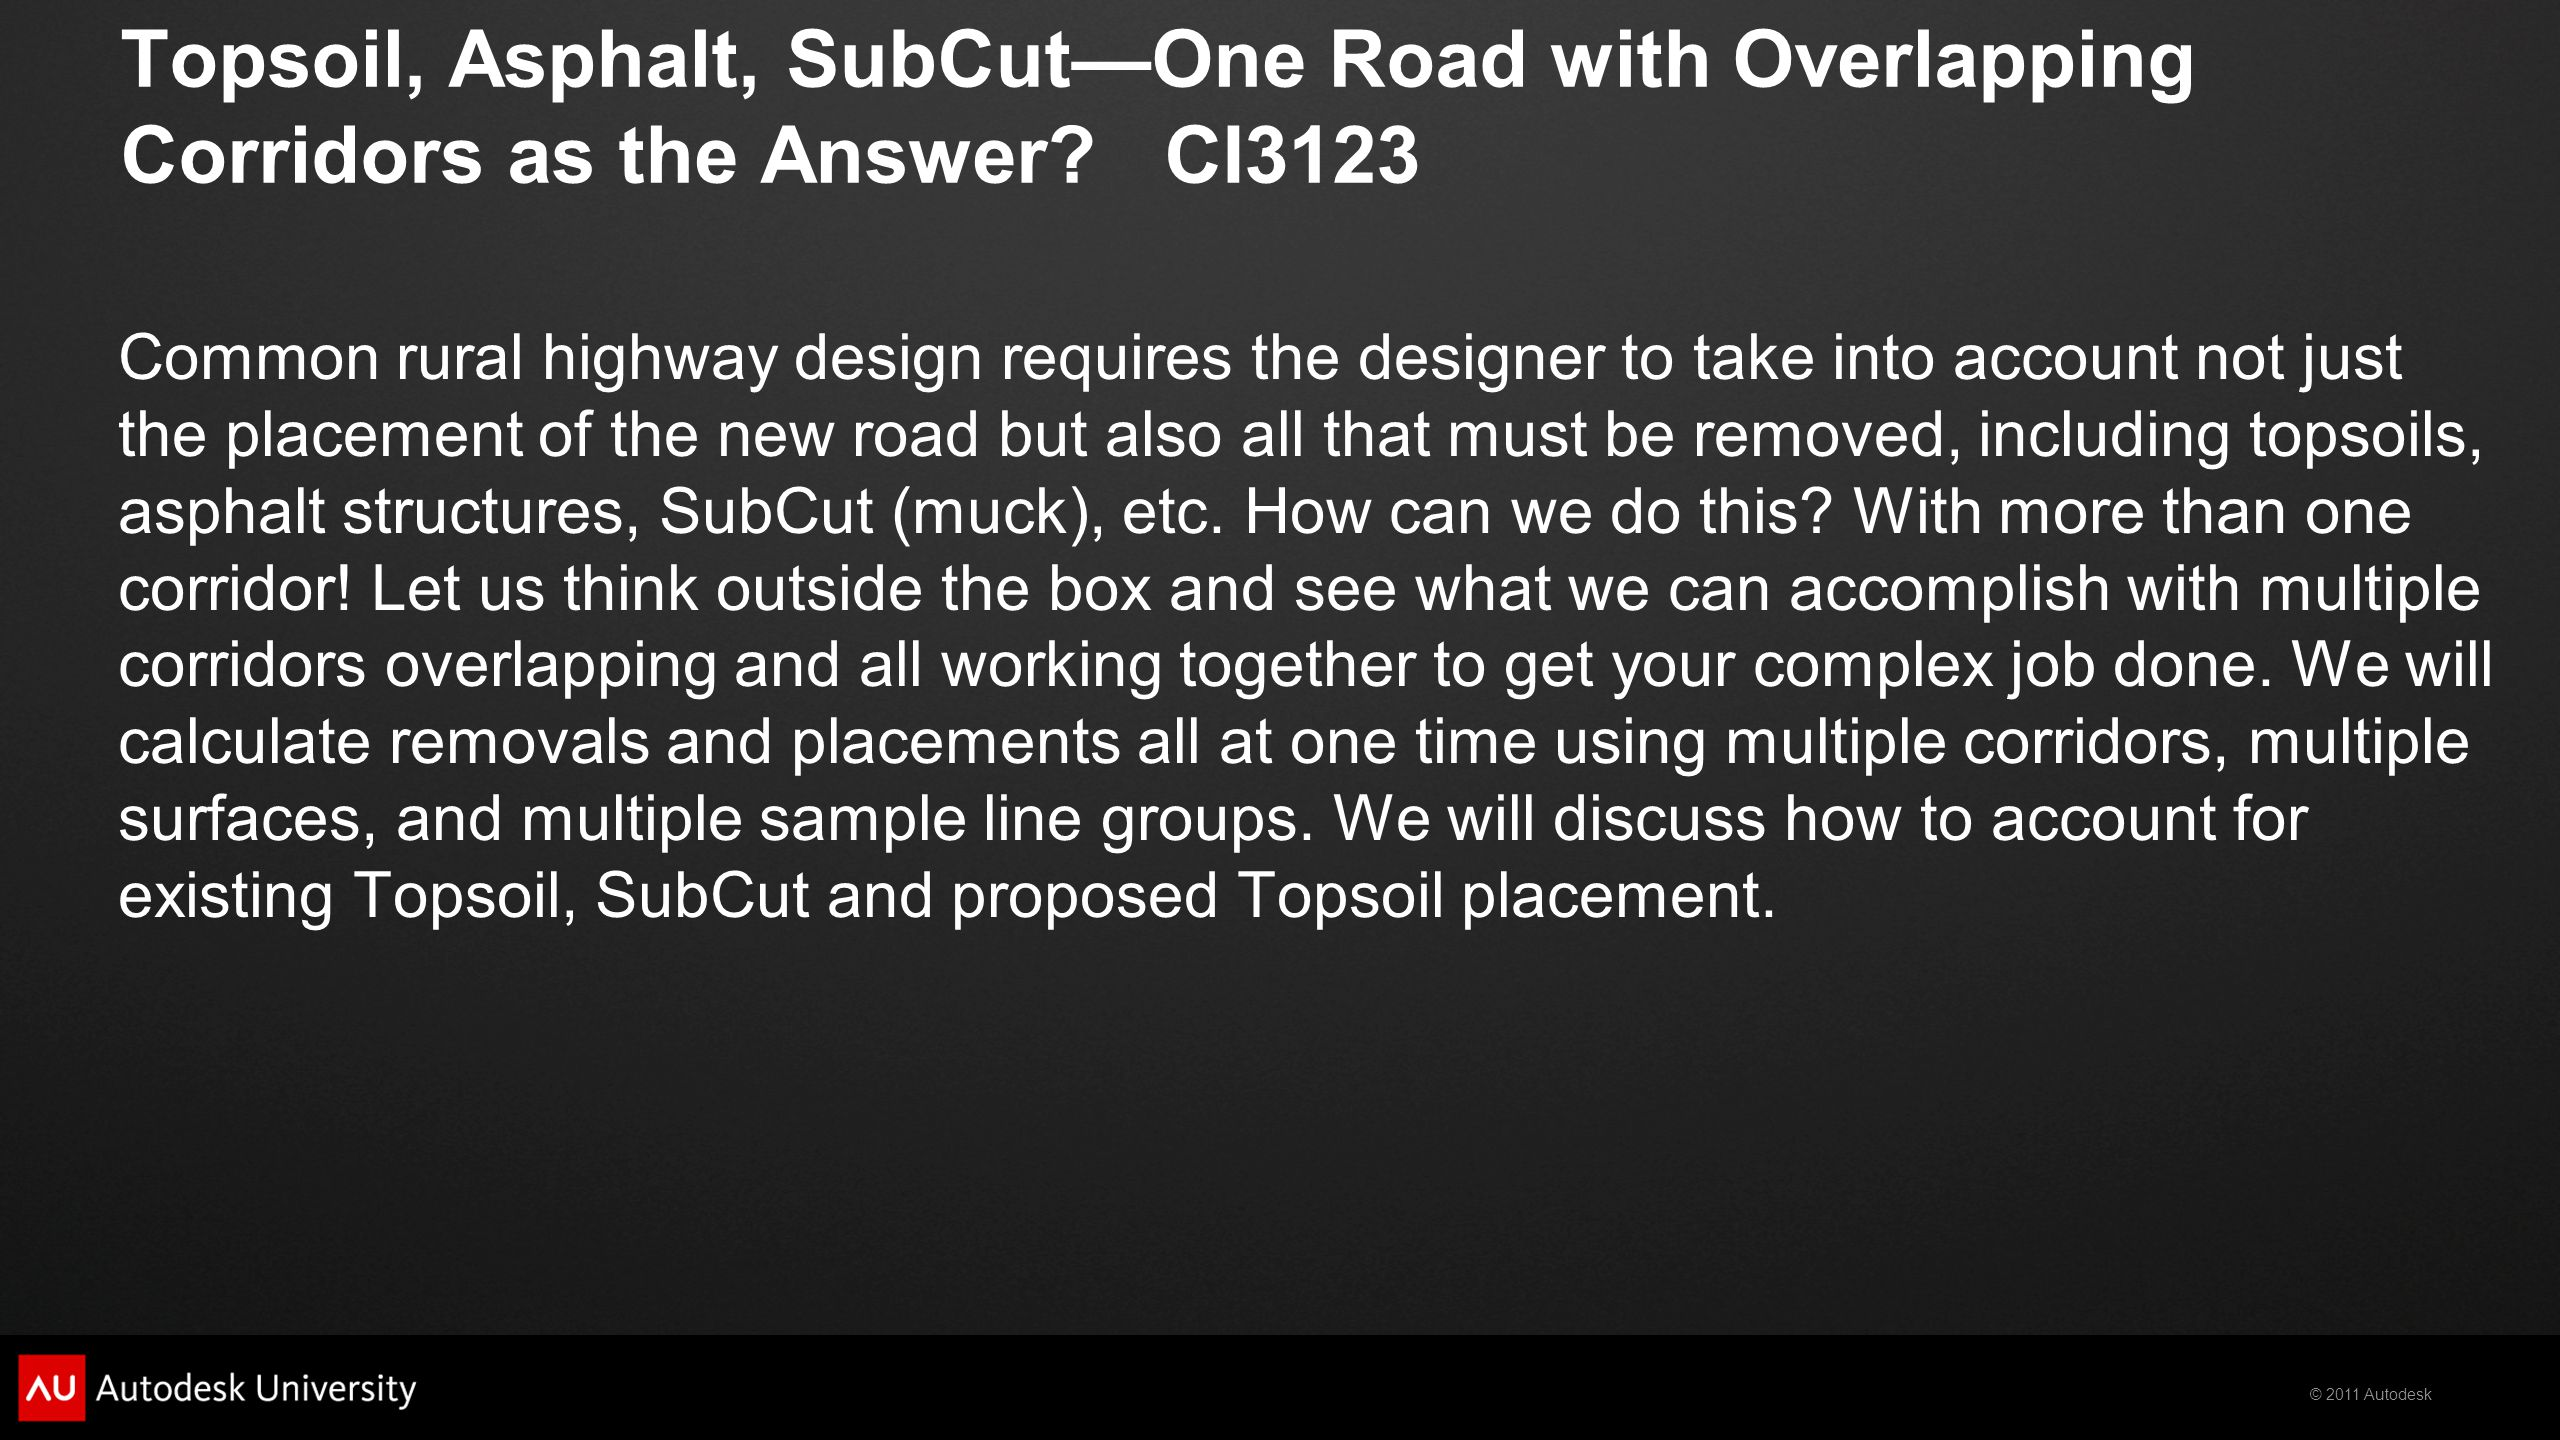 Topsoil, Asphalt, SubCut—One Road with Overlapping Corridors as the Answer CI3123